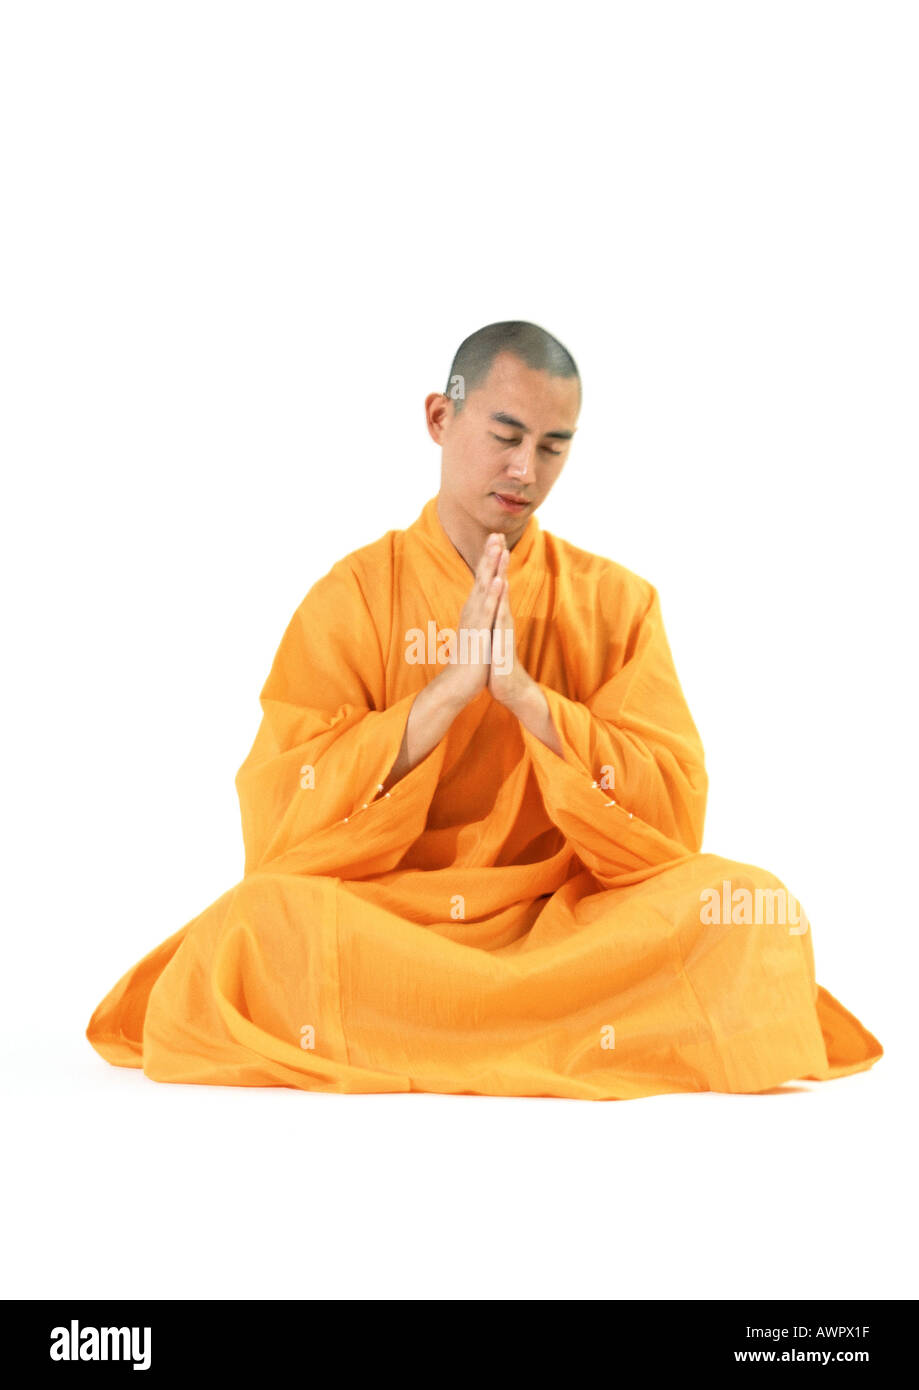 Discussion on this topic: Monk in a Minivan: I Meditated My , monk-in-a-minivan-i-meditated-my/